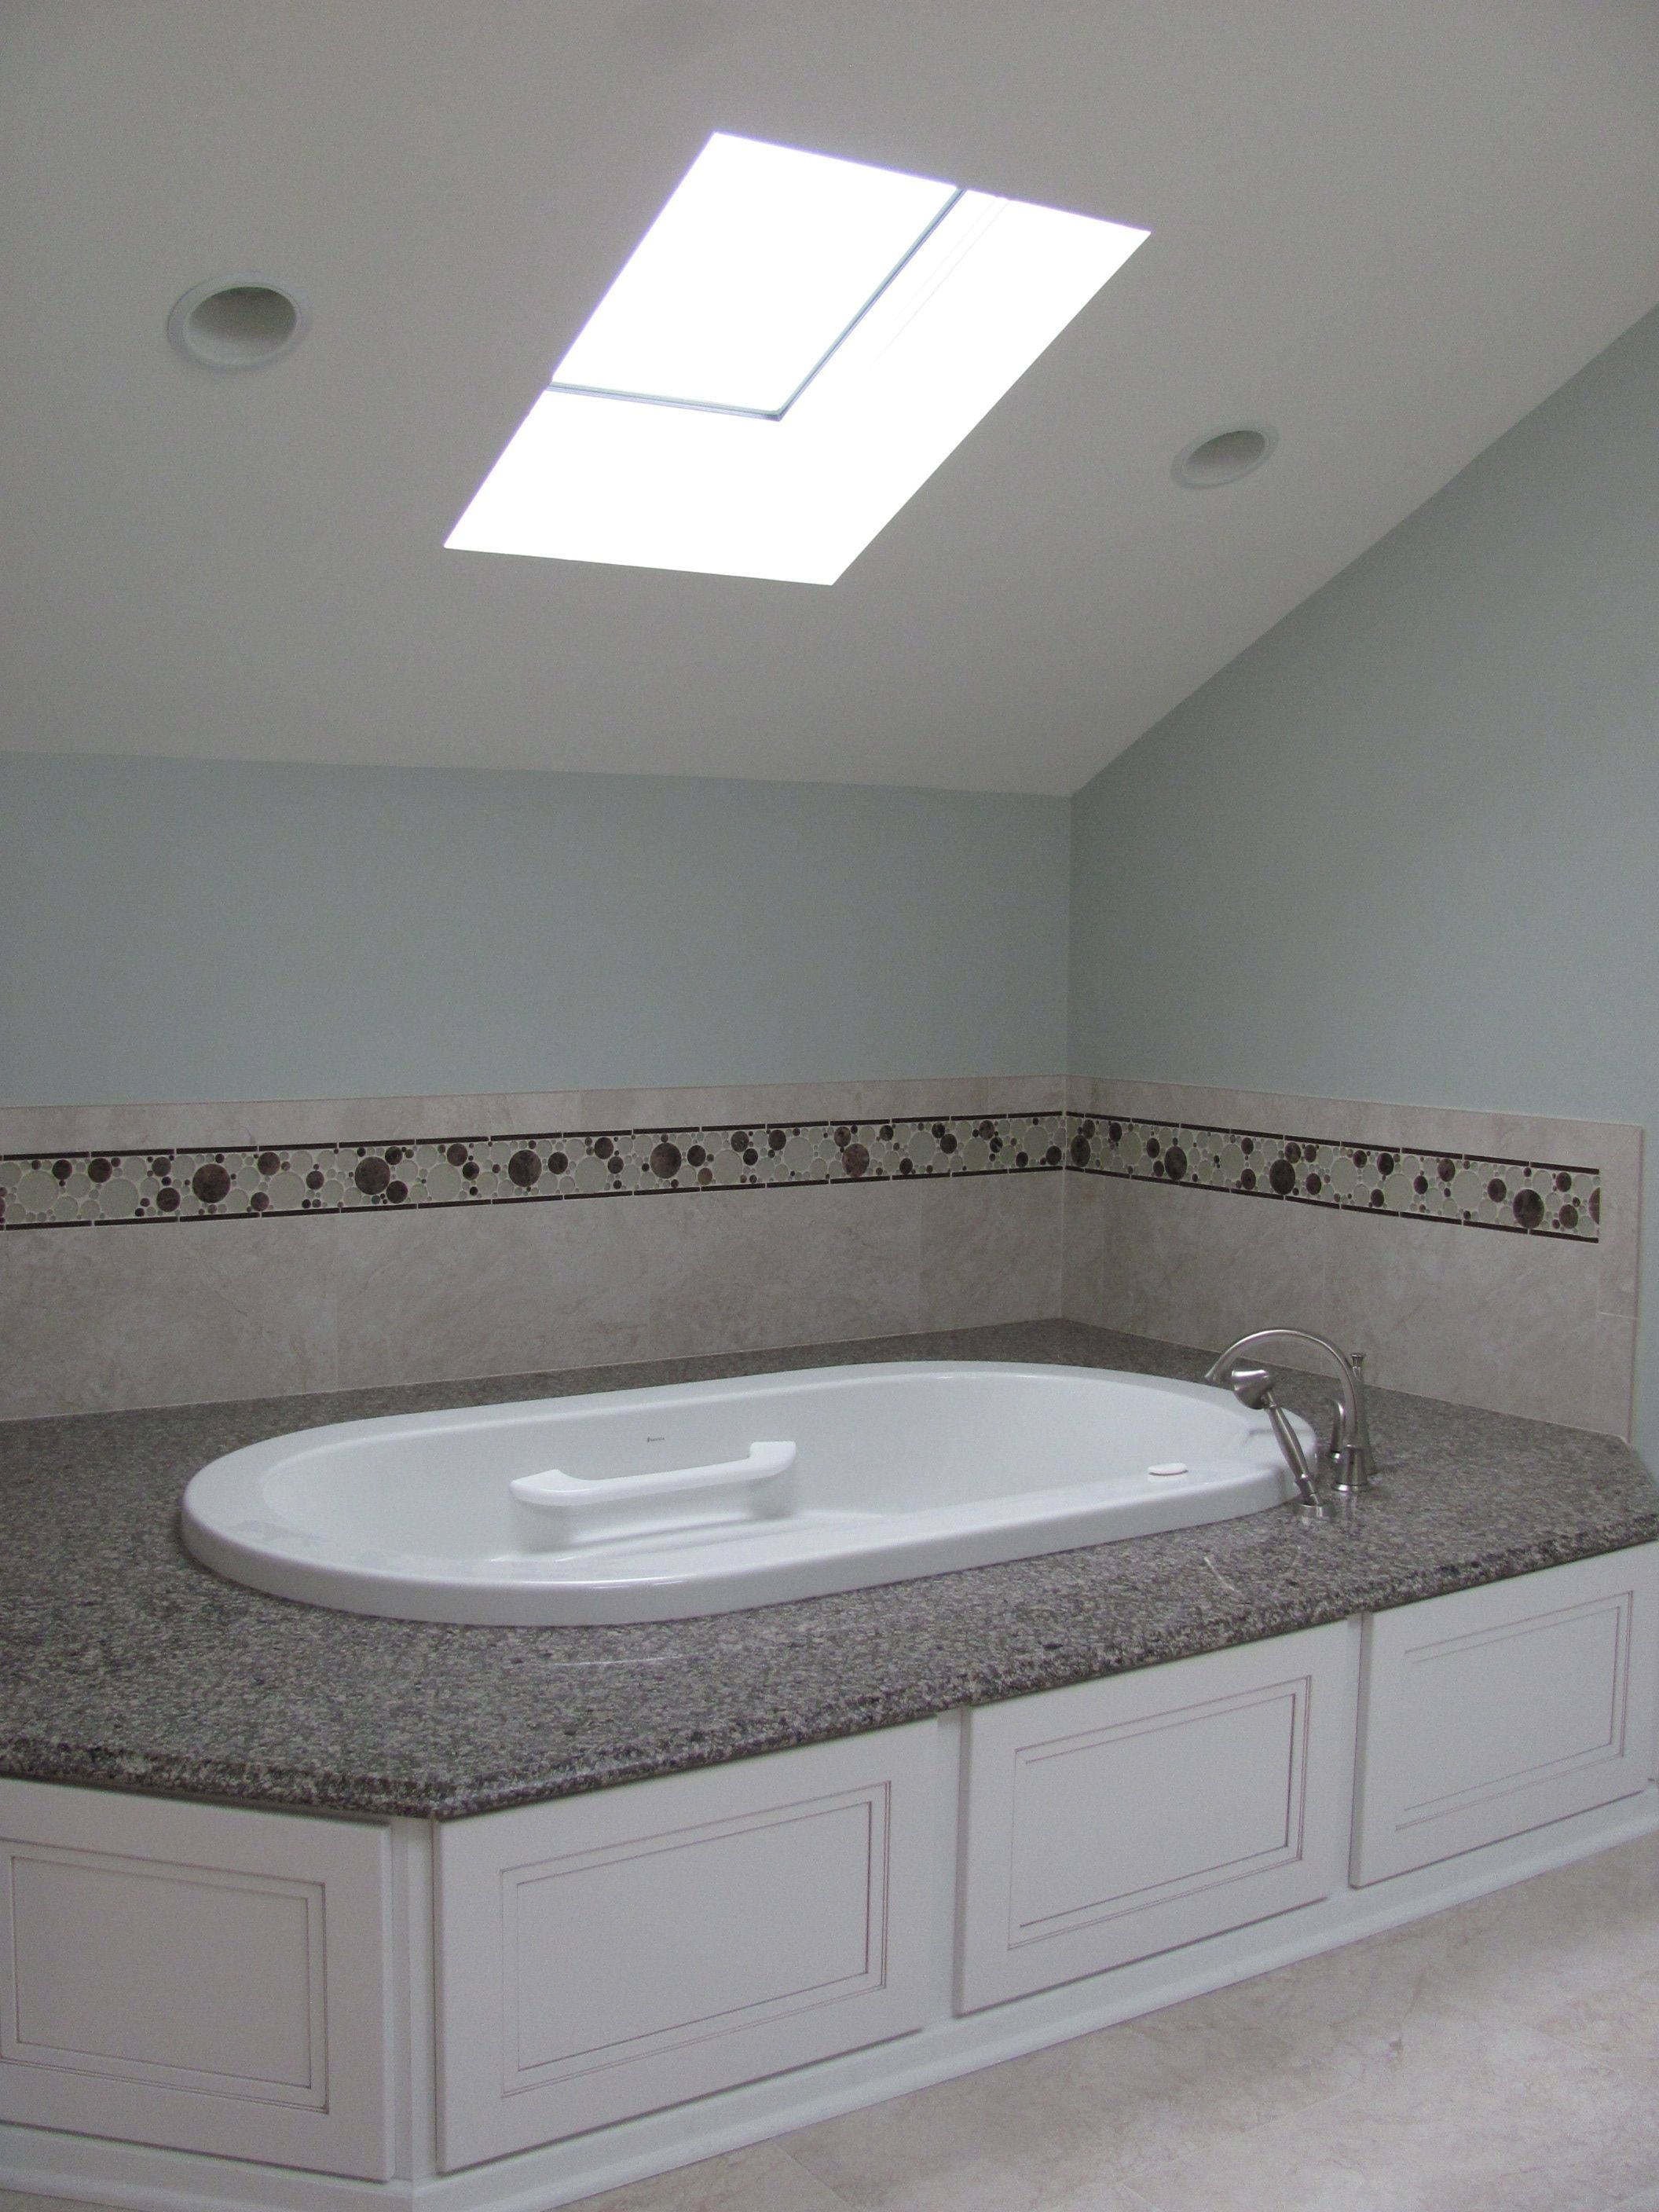 Soaking tub with easy access. Perfect for Bubbles!